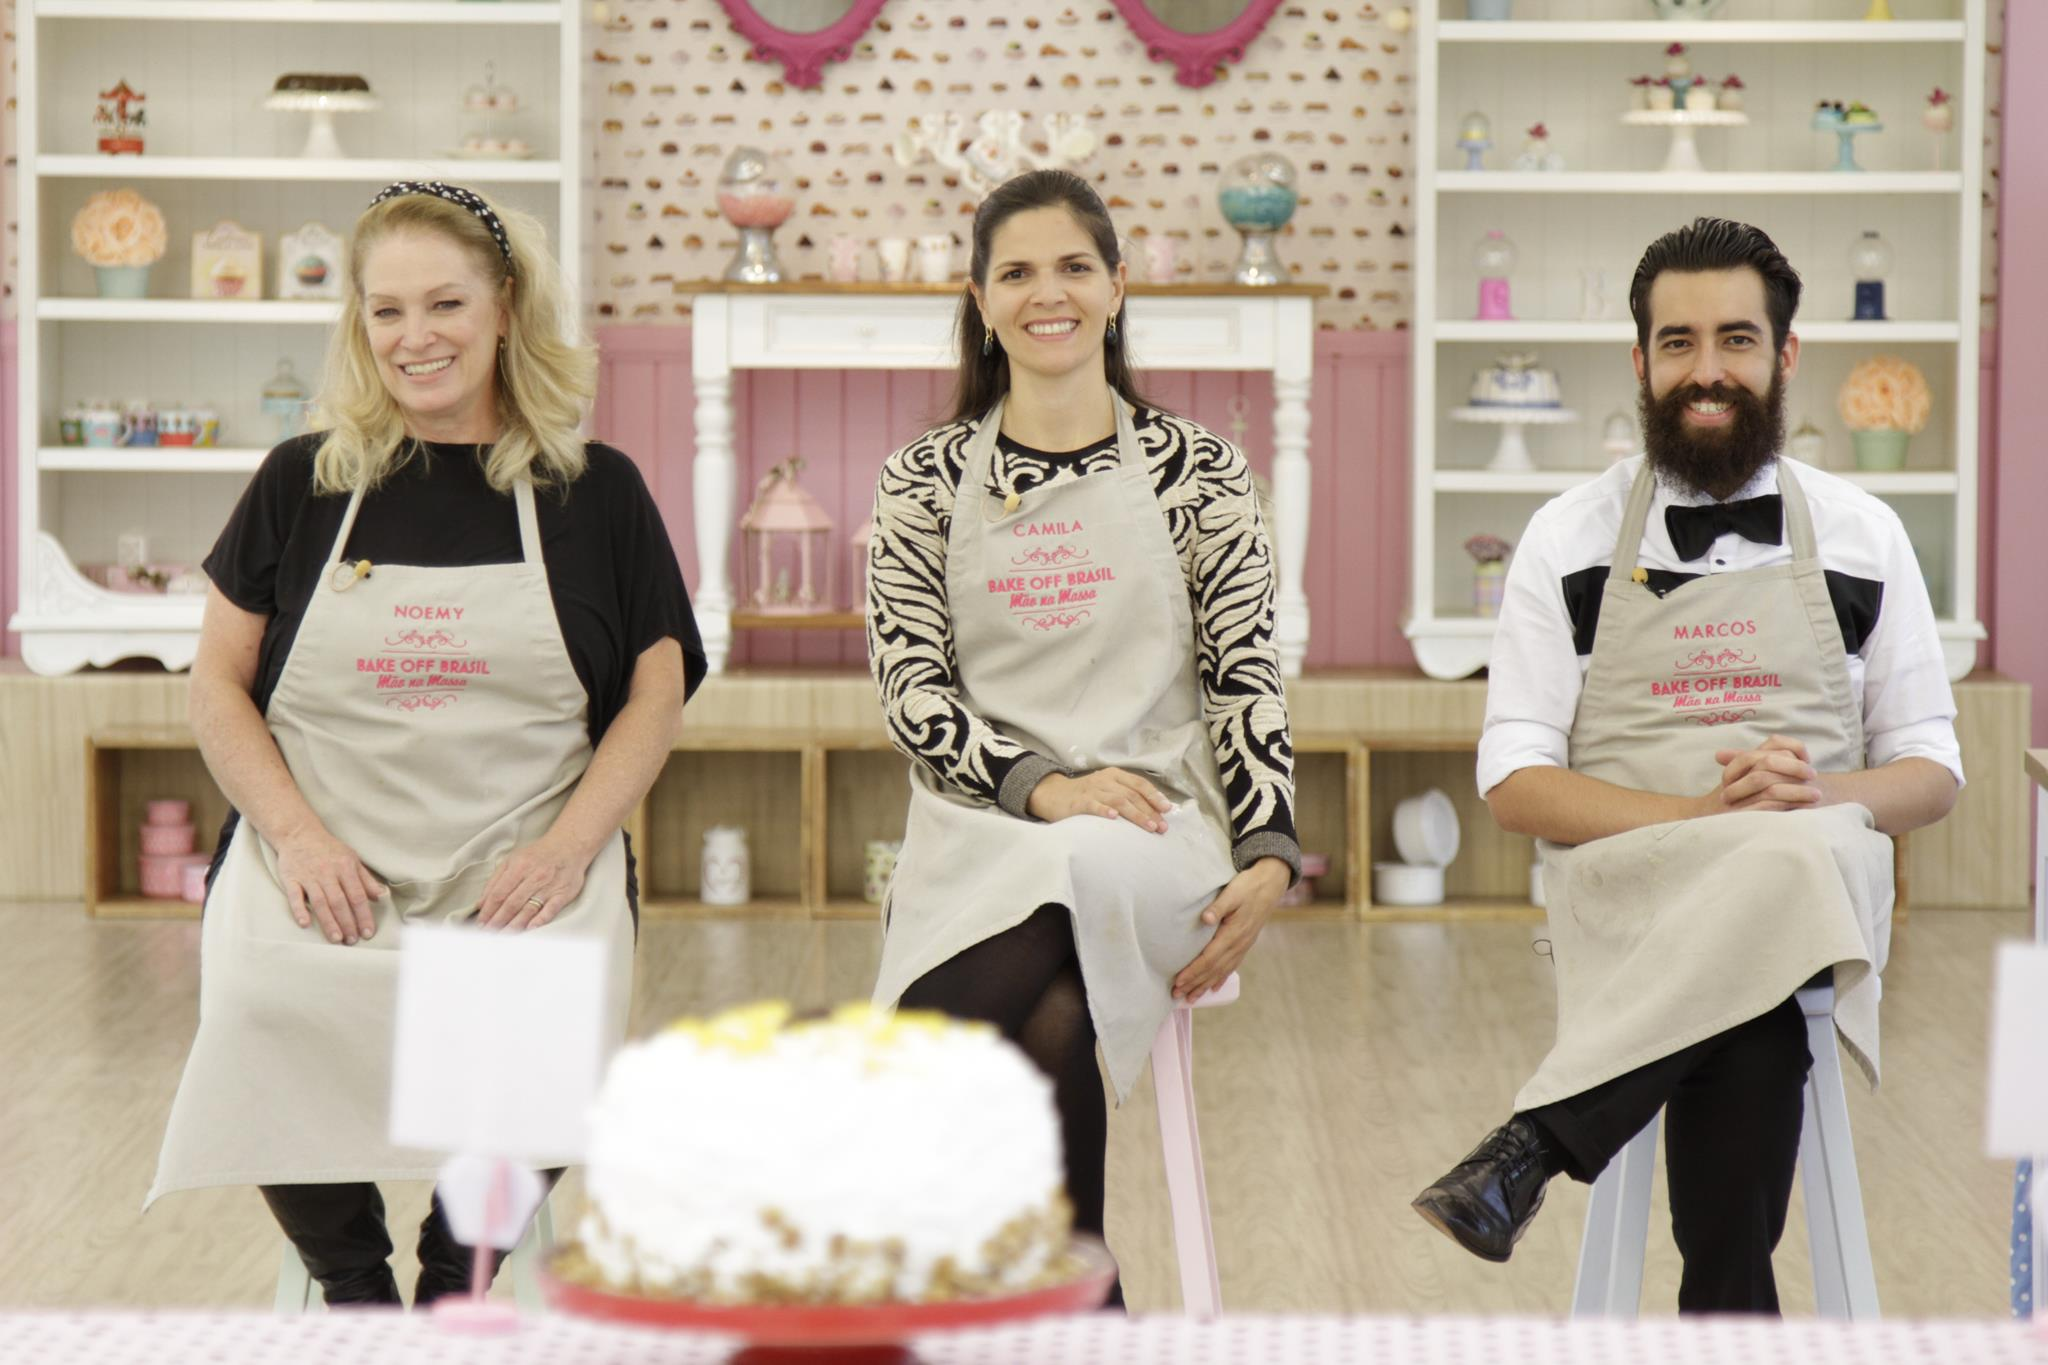 Noemy, Camila e Marcos chegaram à final do Bake Off Brasil (Fotos: Gabriel Gabe/SBT)